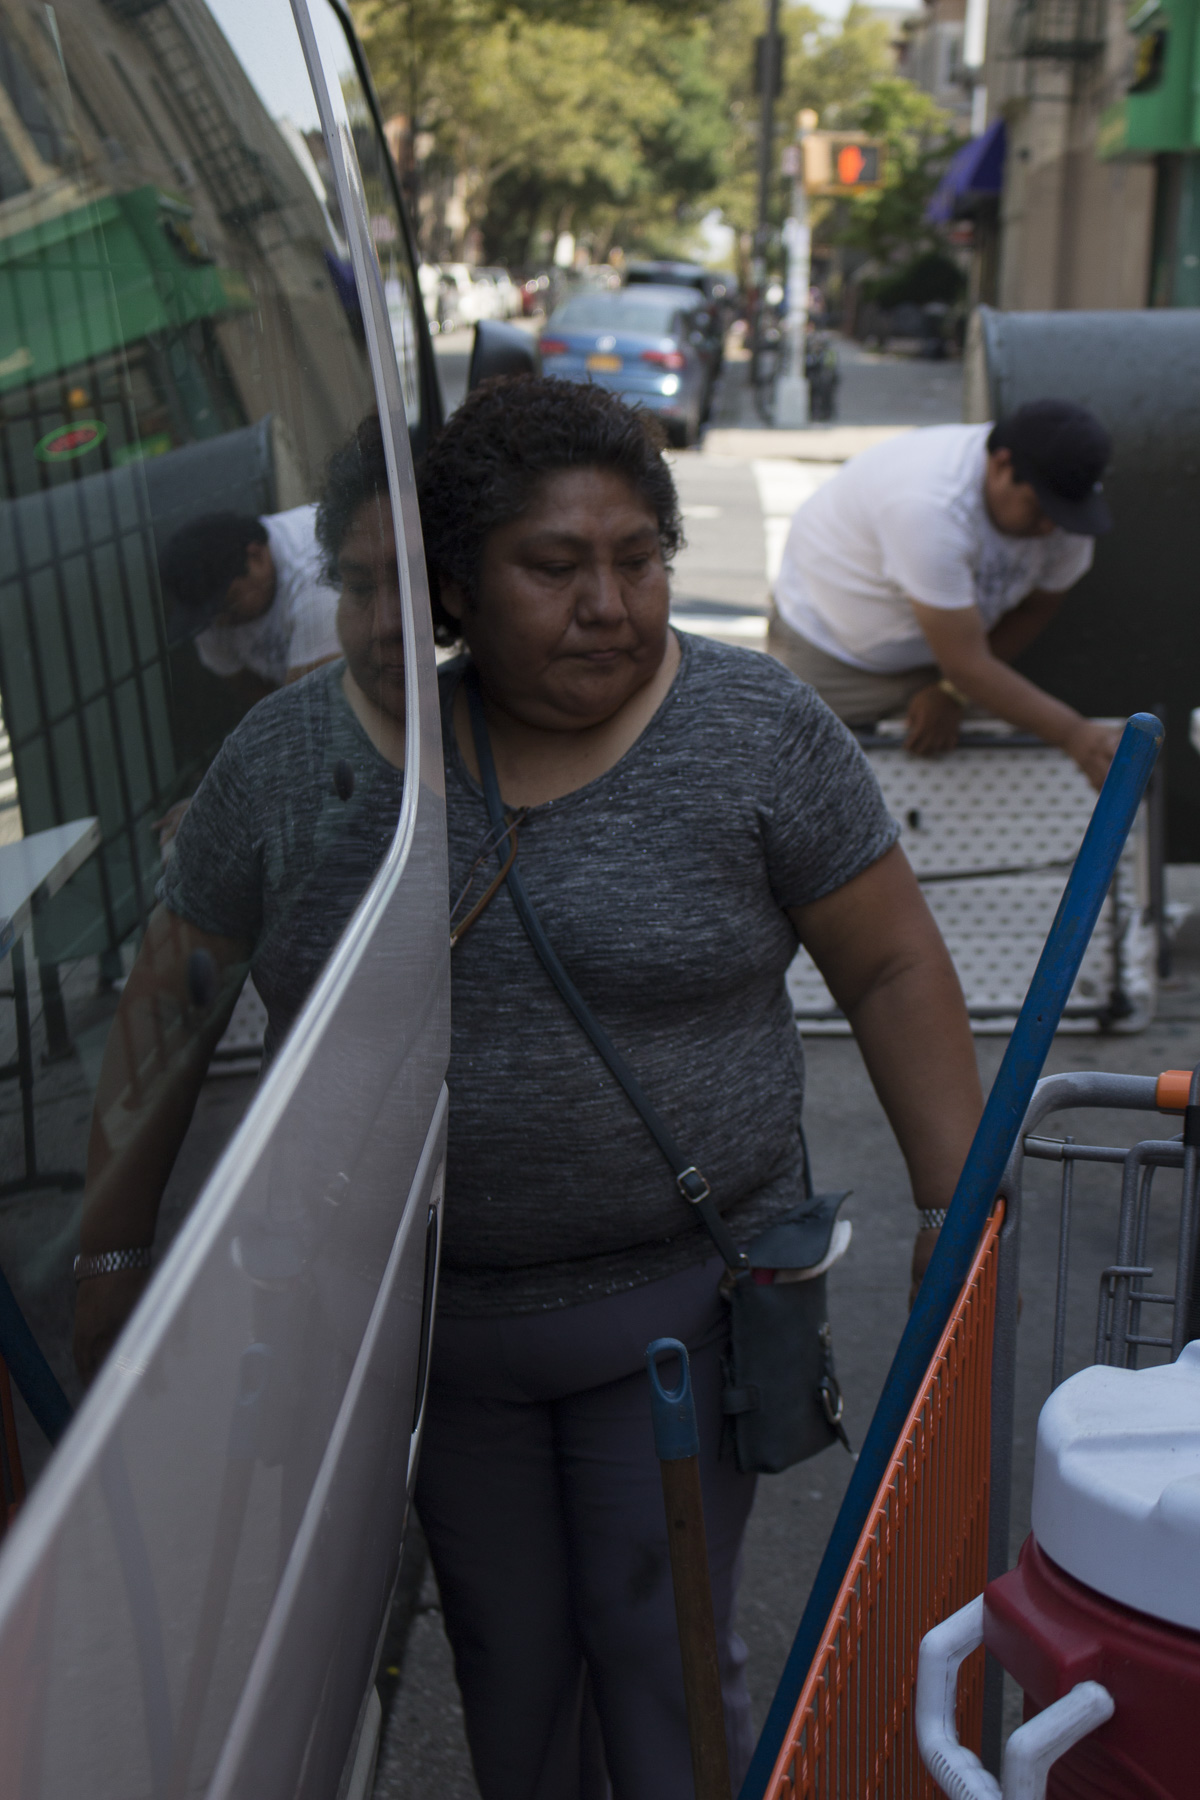 Teodosia unpacks her truck each day in Sunset Park, Brooklyn. On August 22nd, 2017, she had the help of her son Sergio.